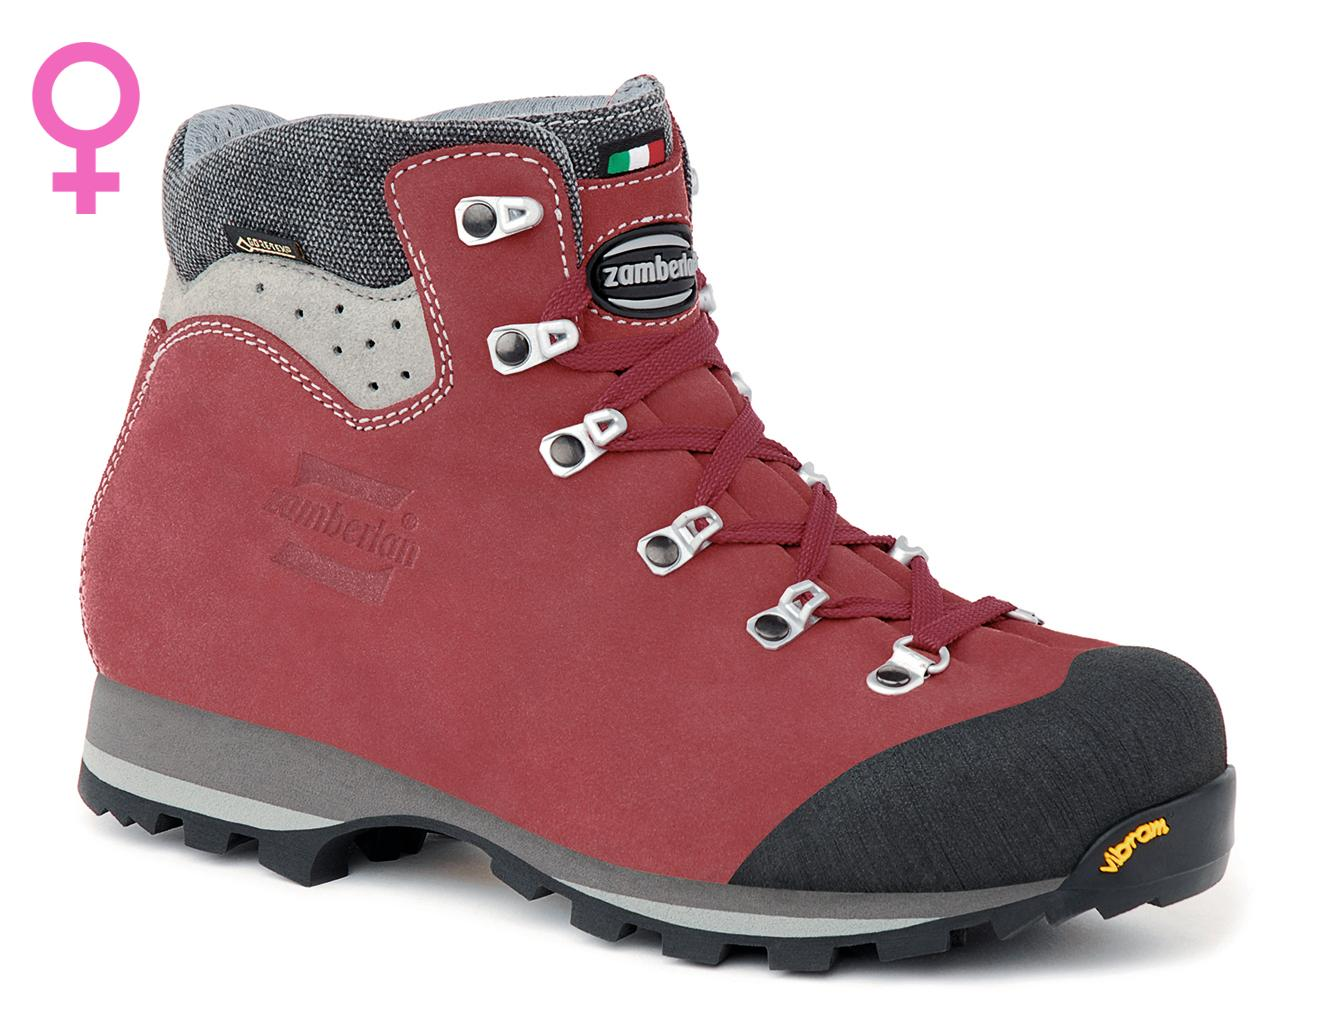 491 TRACKMASTER GTX WNS   -    Hiking Boots    -   Burgundy